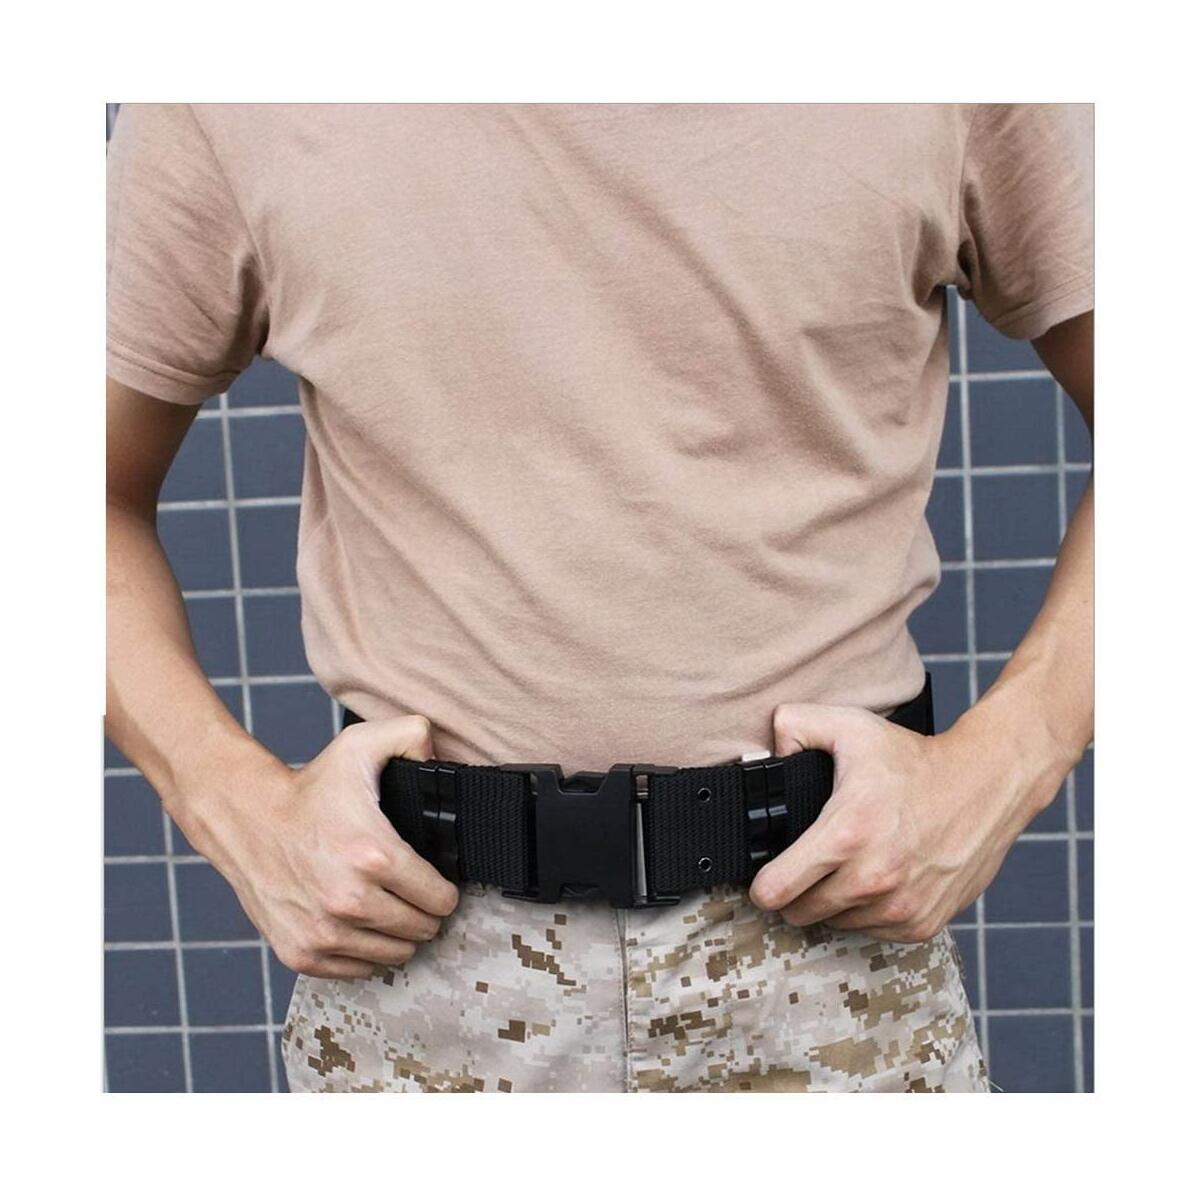 OLEADER Tactical Belt Military Utility Nylon Belt Combat Security Rigger Waist Belt Heavy Duty for Outdoor Hunting Army Survival-93 Khaki